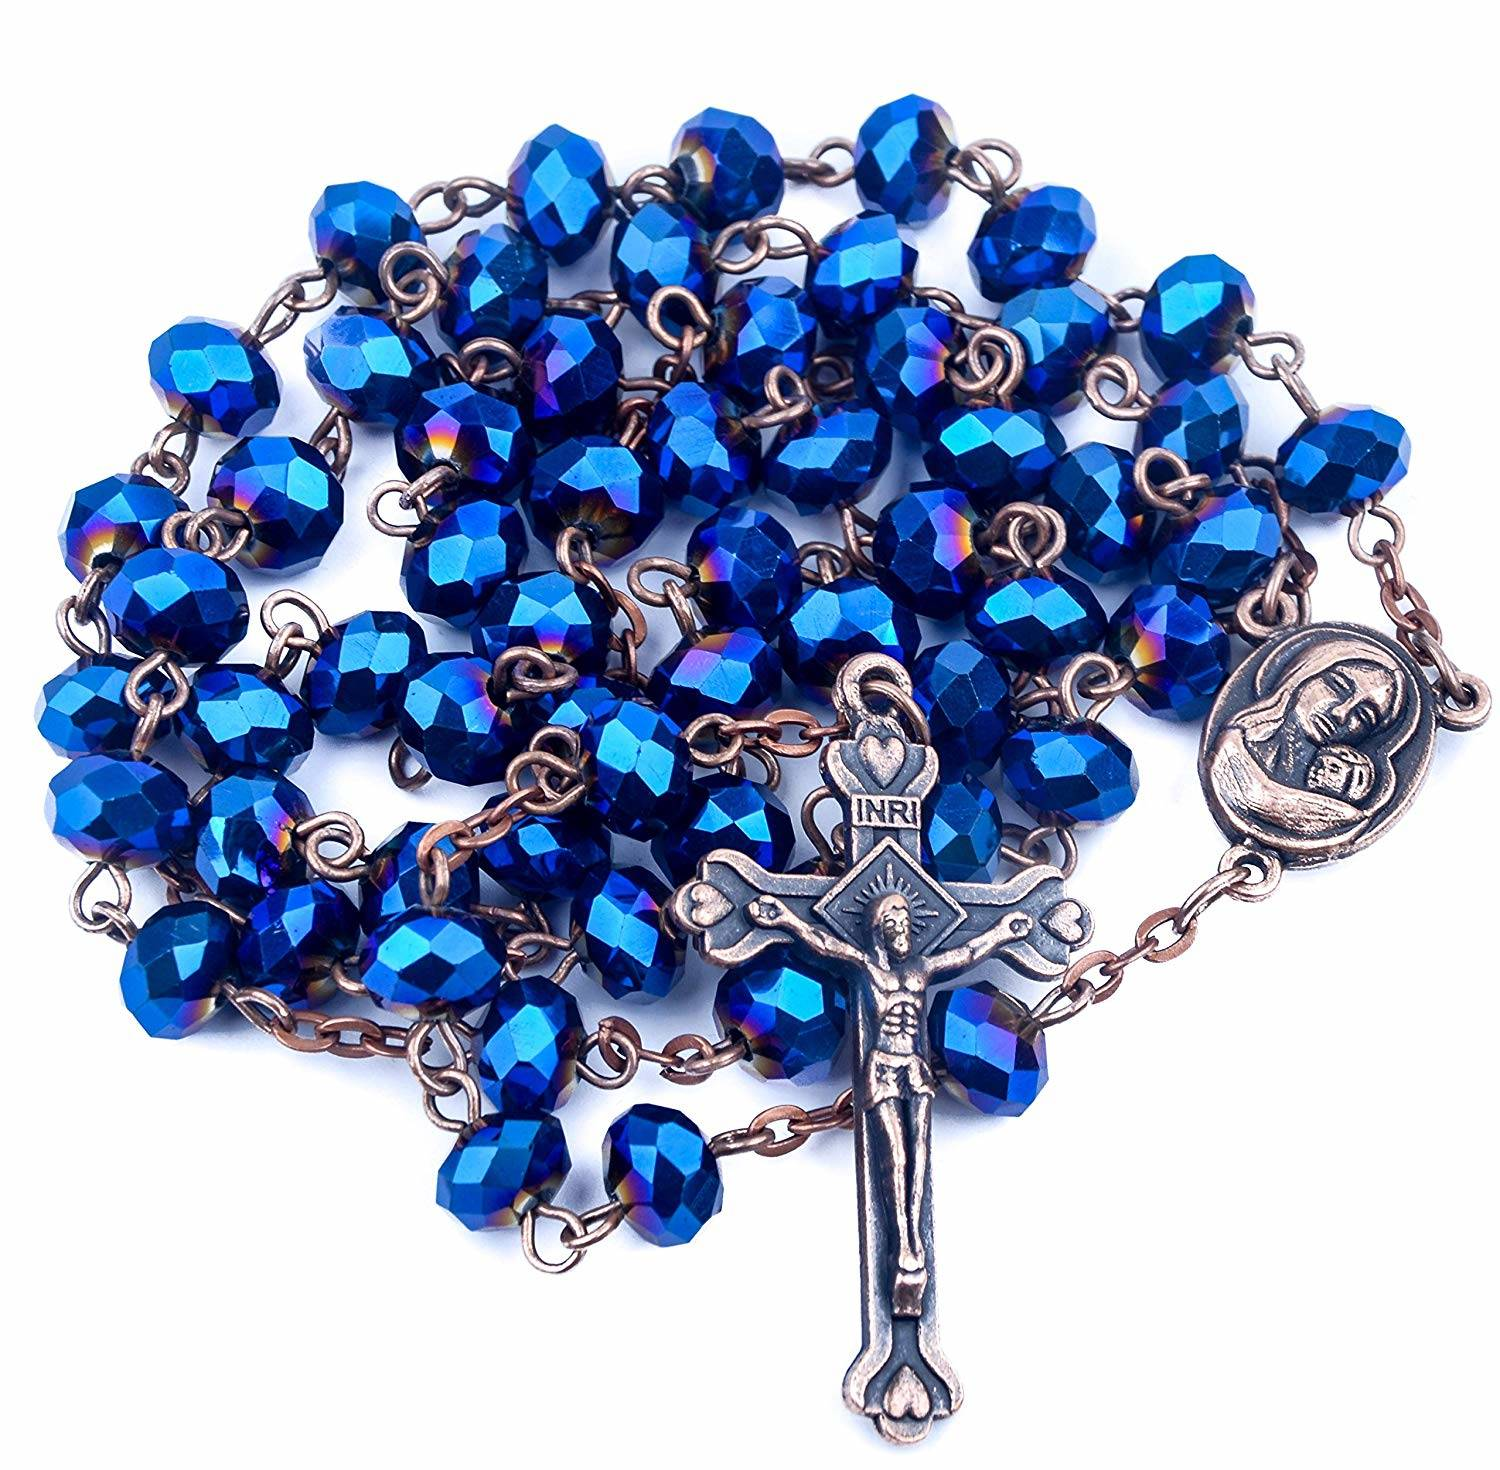 d34173e84 Antique Deep Blue Crystal Beads Rosary Necklace Holy Soil Medal ...